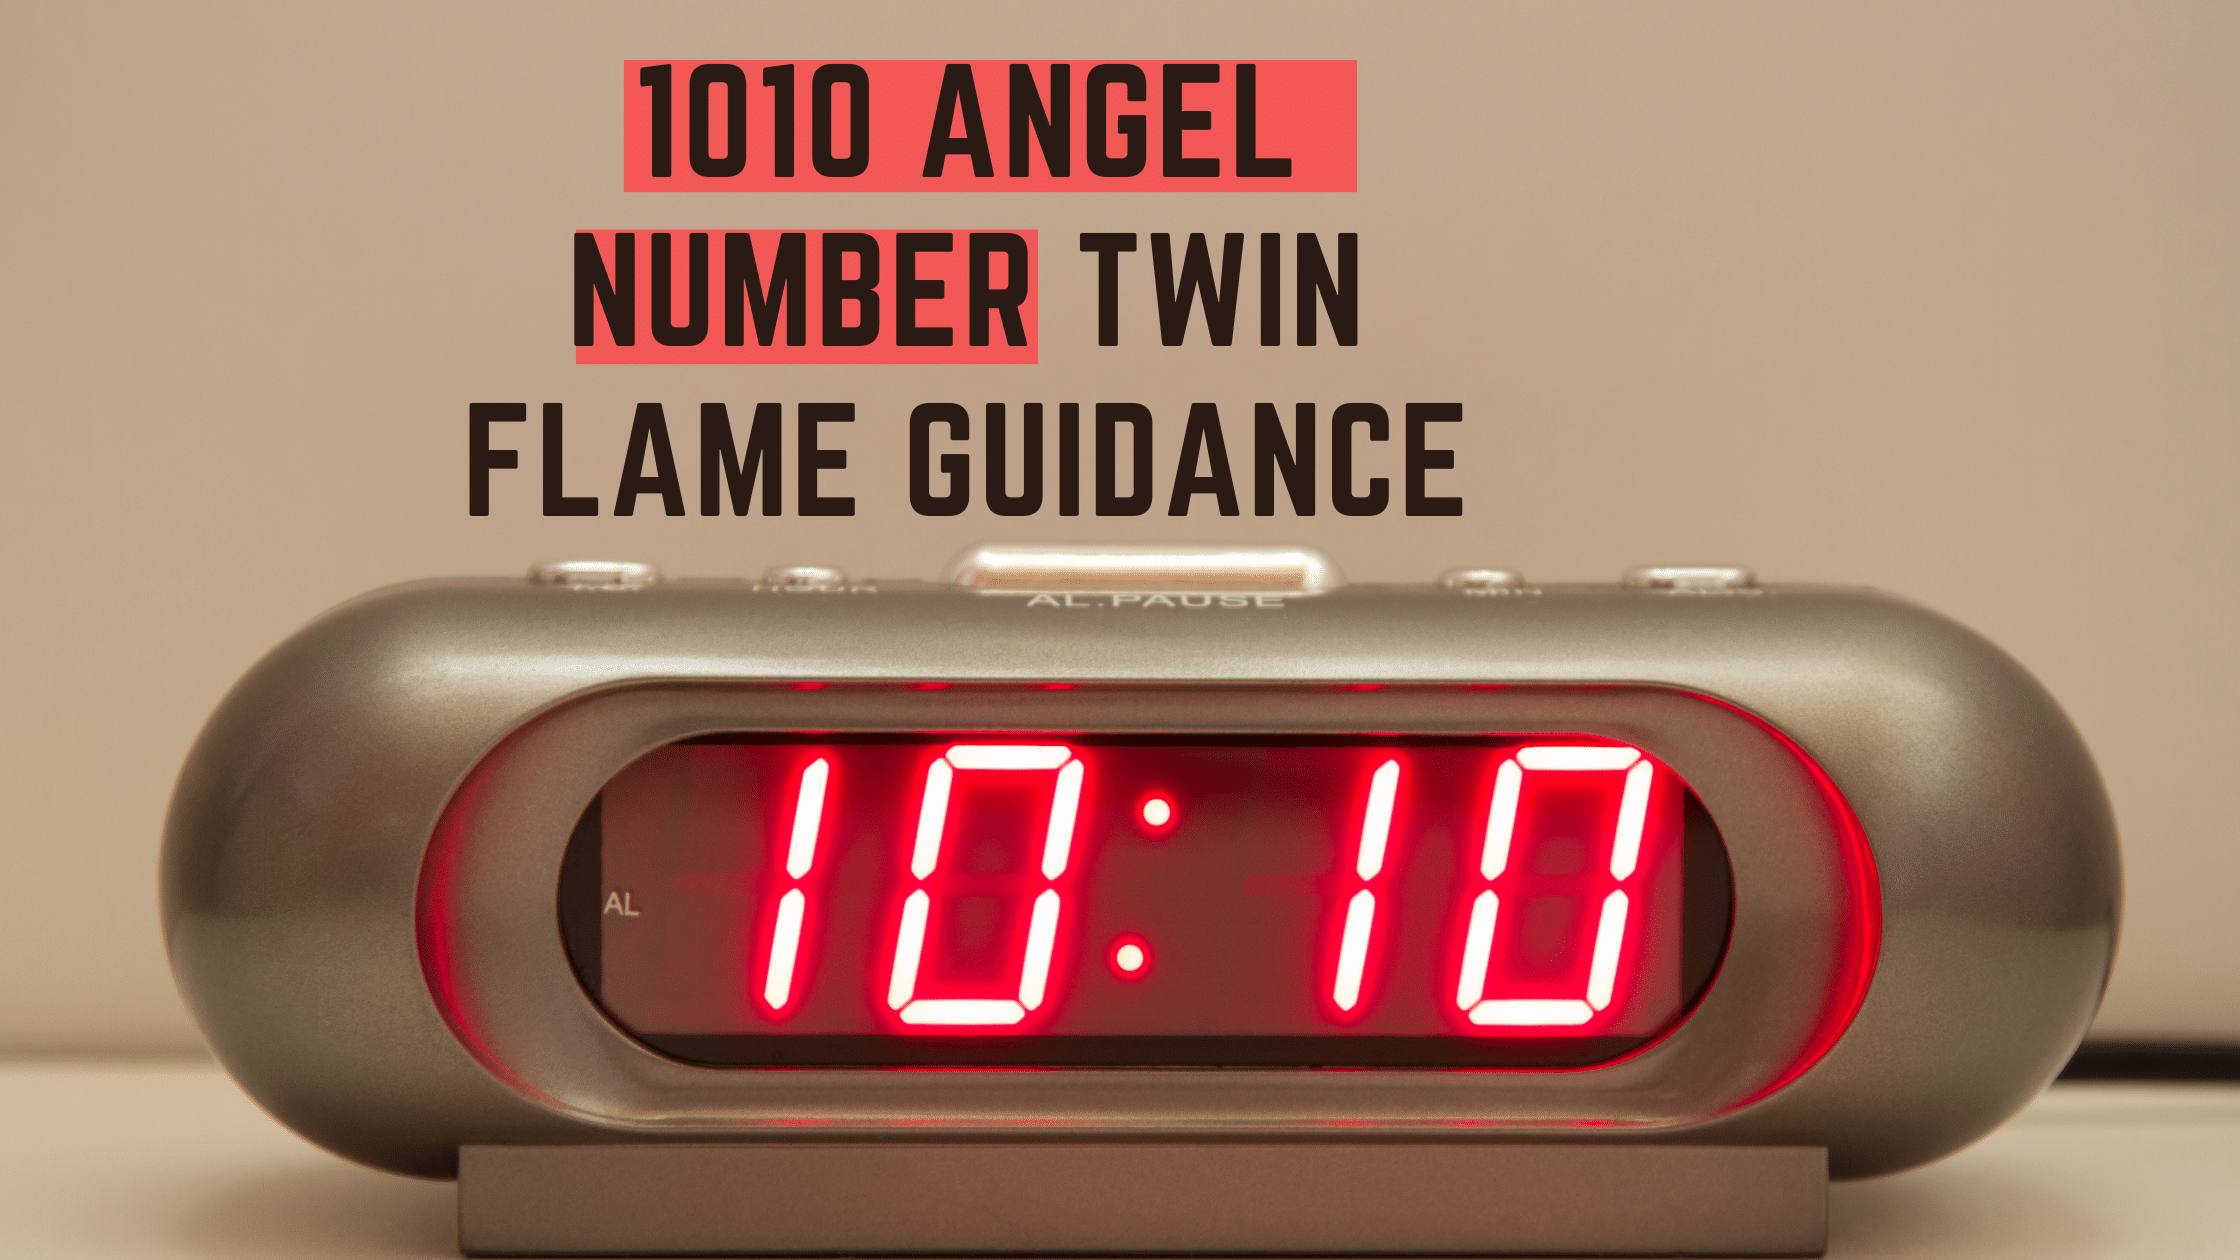 1010 Angel Number Twin Flame